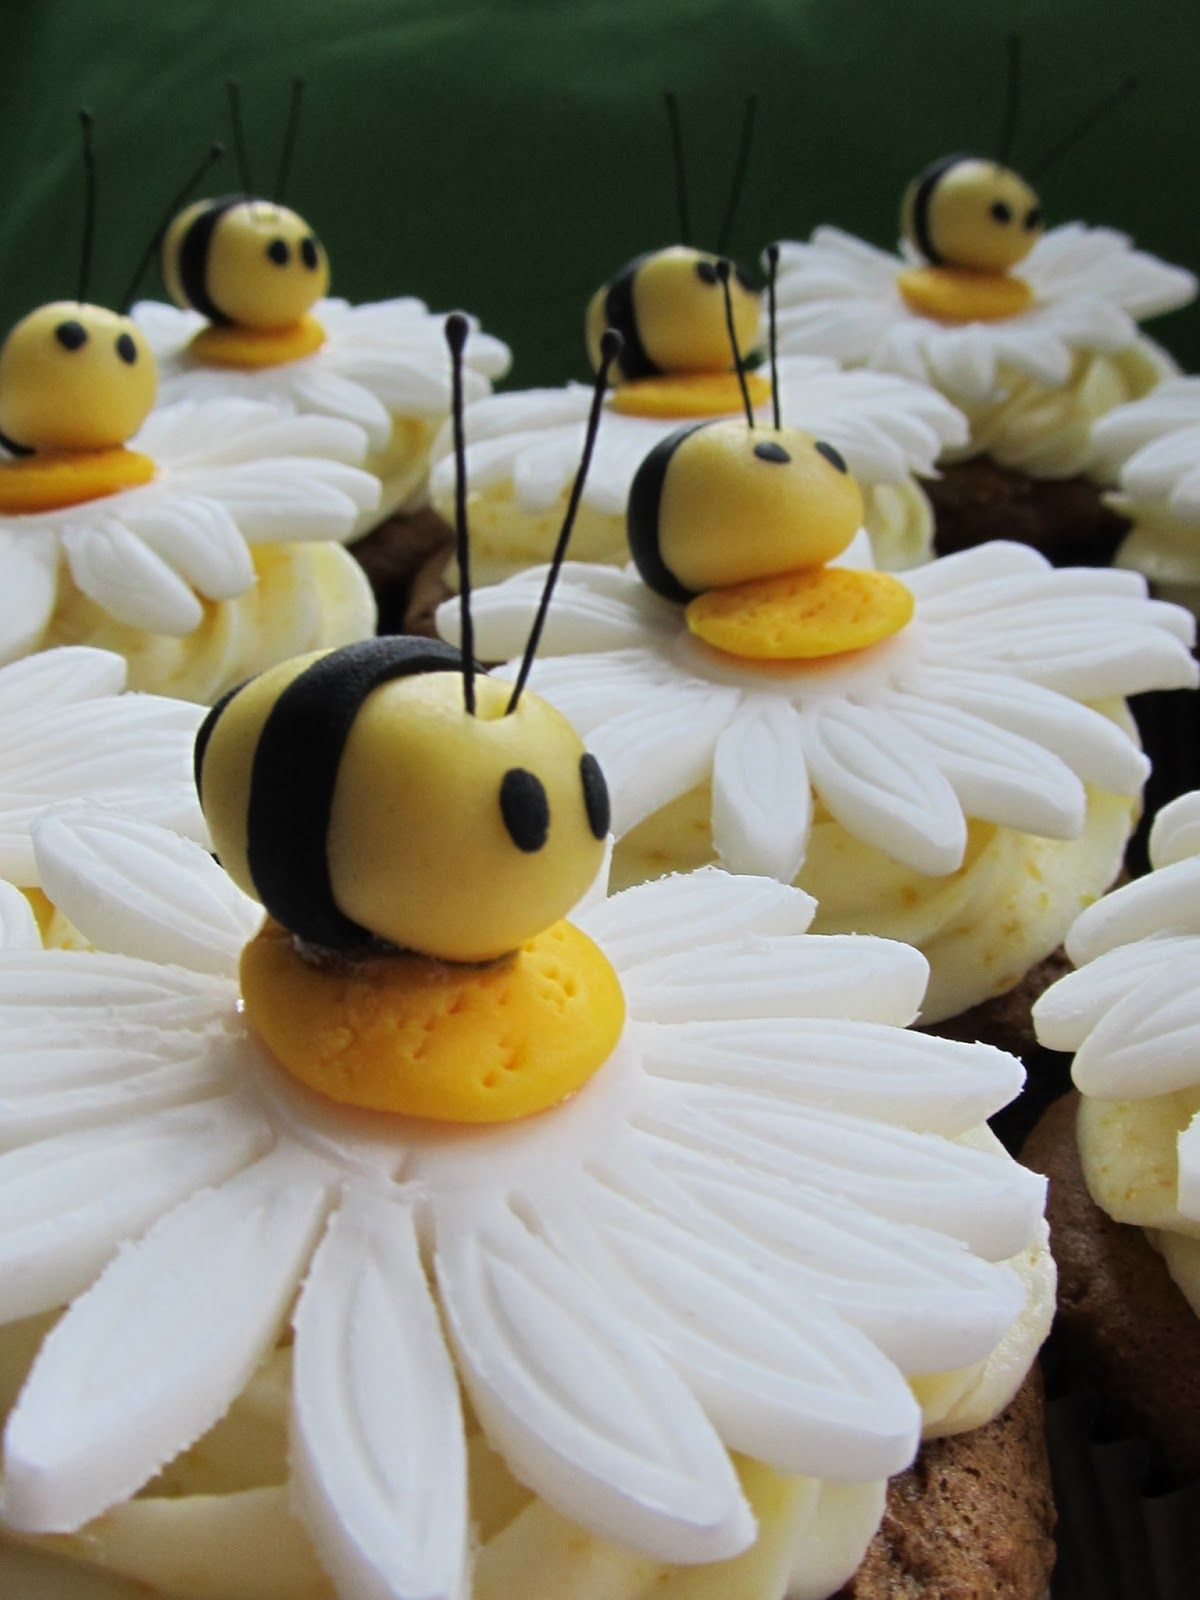 Sweet Treets Cakery Bee And Daisy Cupcake Topper Tutorial This Is A I Posted Back In 2013 It Has Had Over 1700 Pins Shares